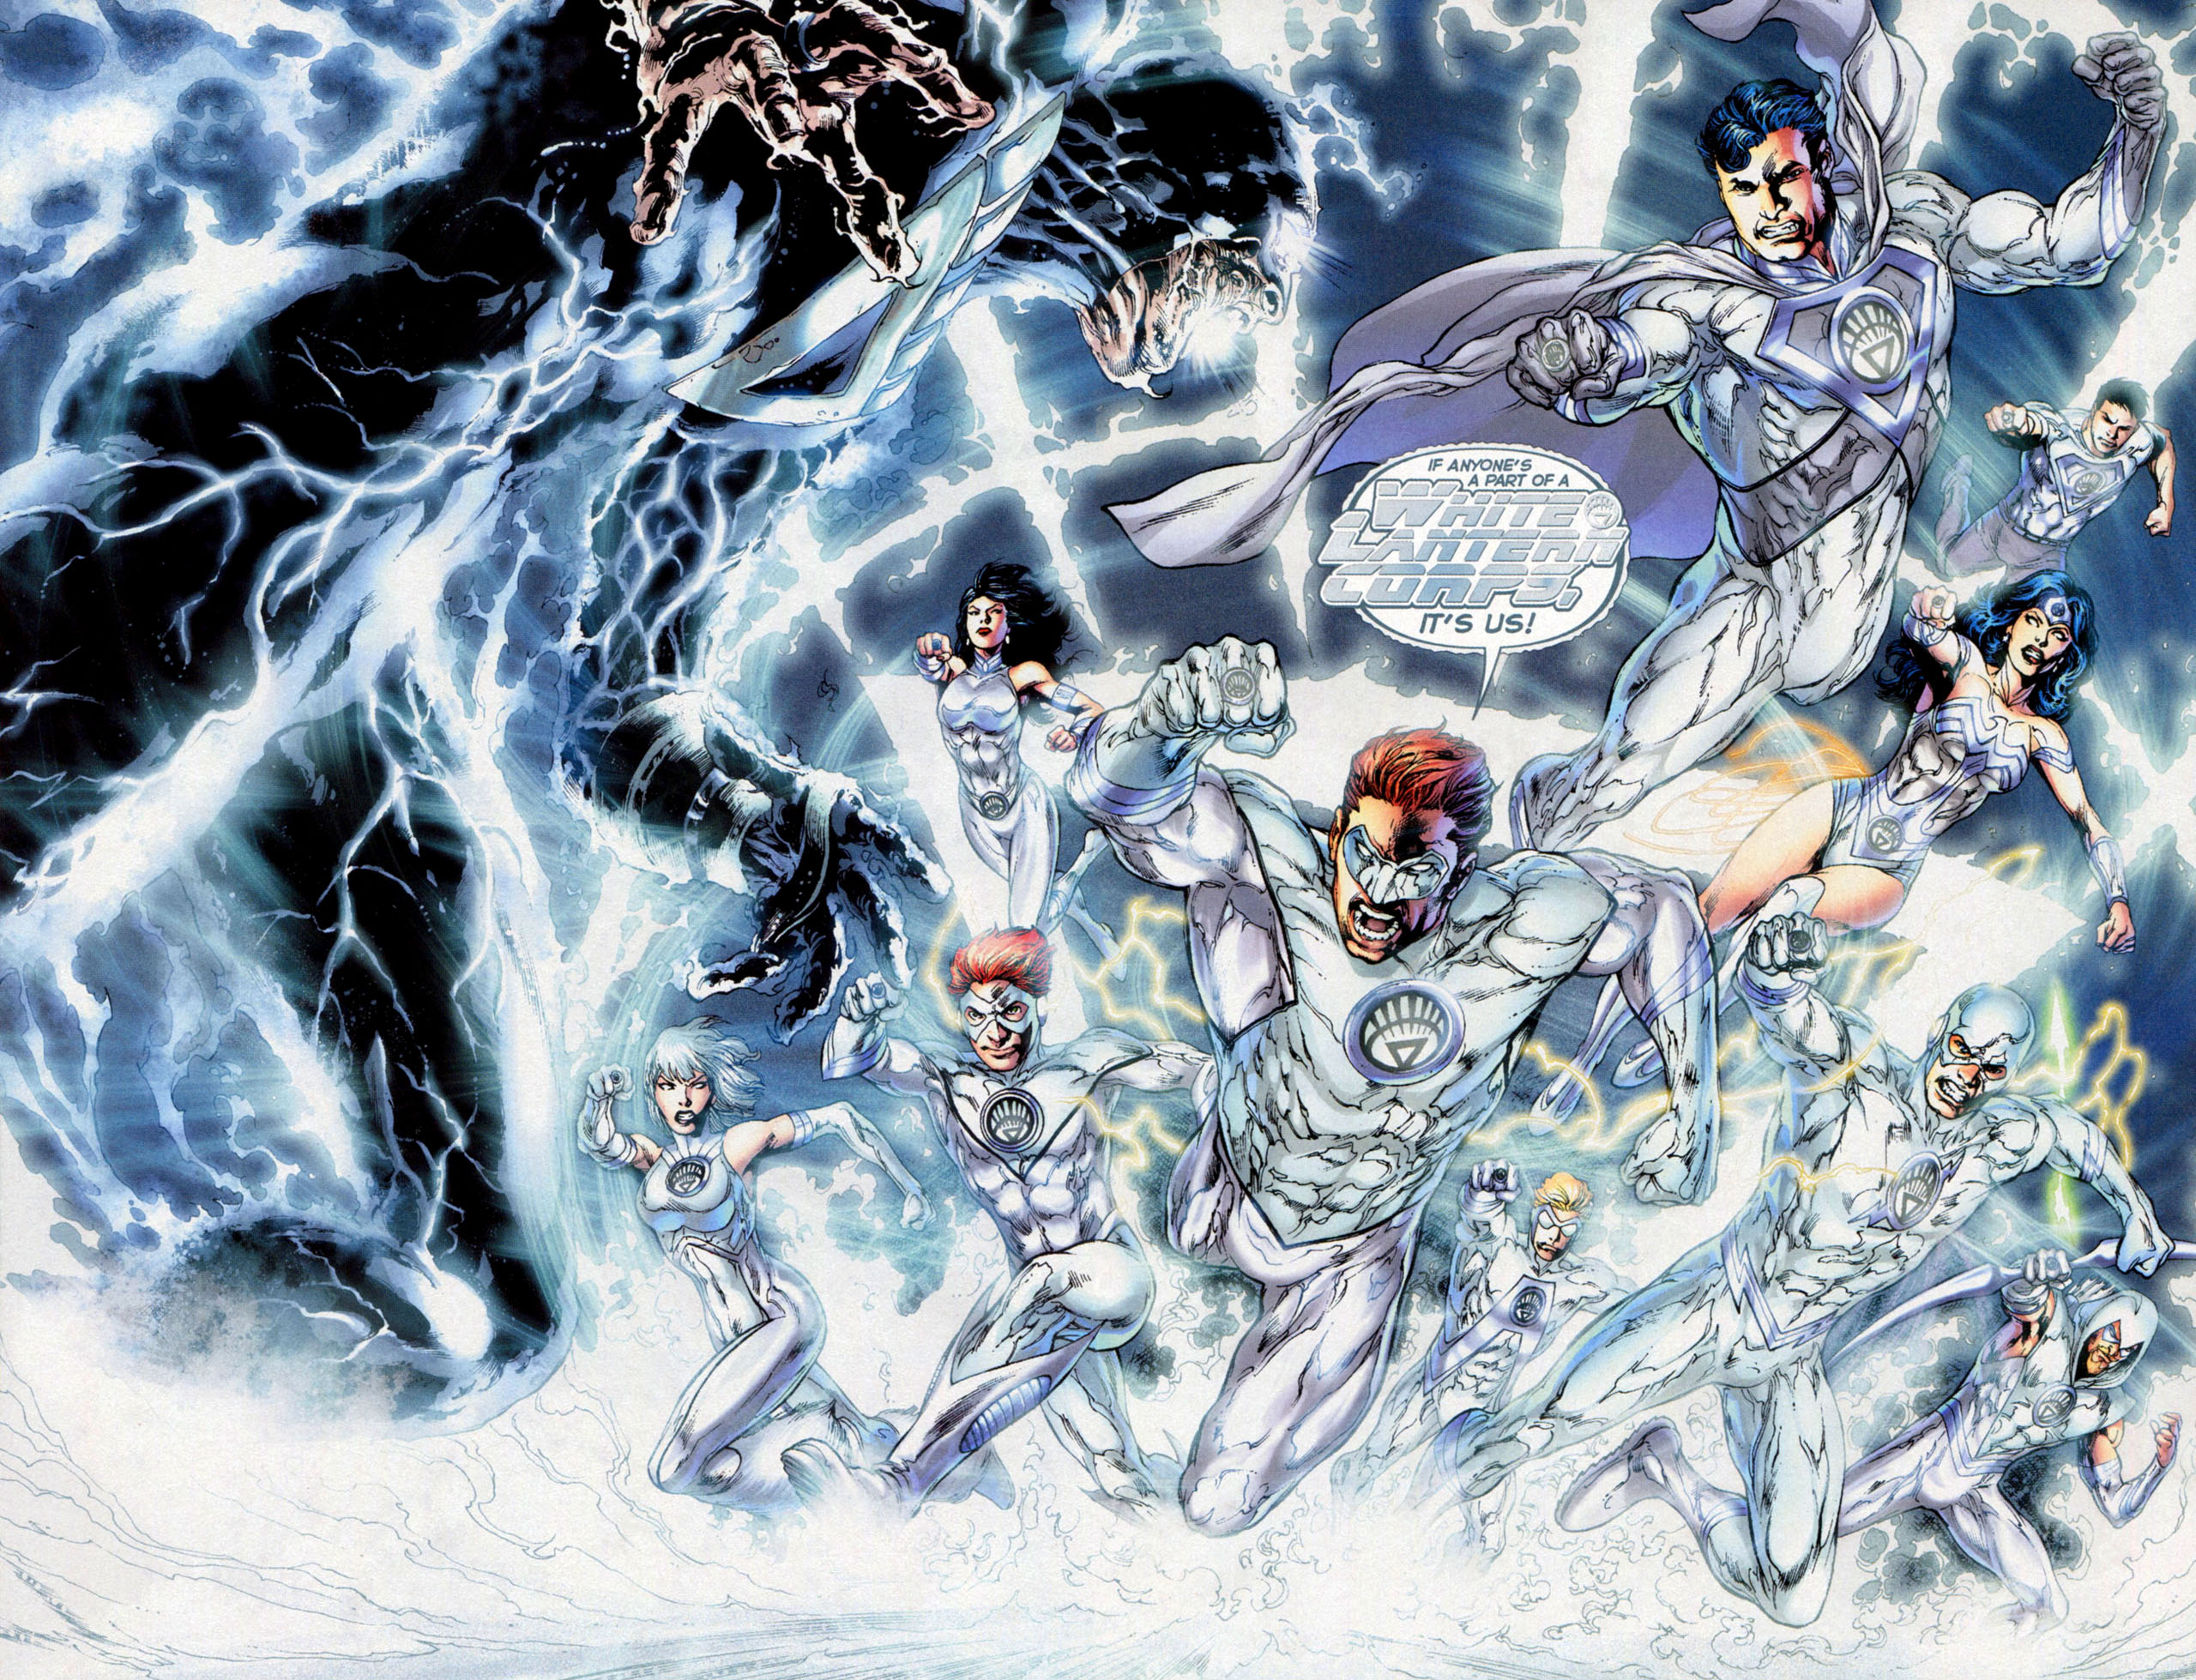 White Lantern Corps (New Earth)